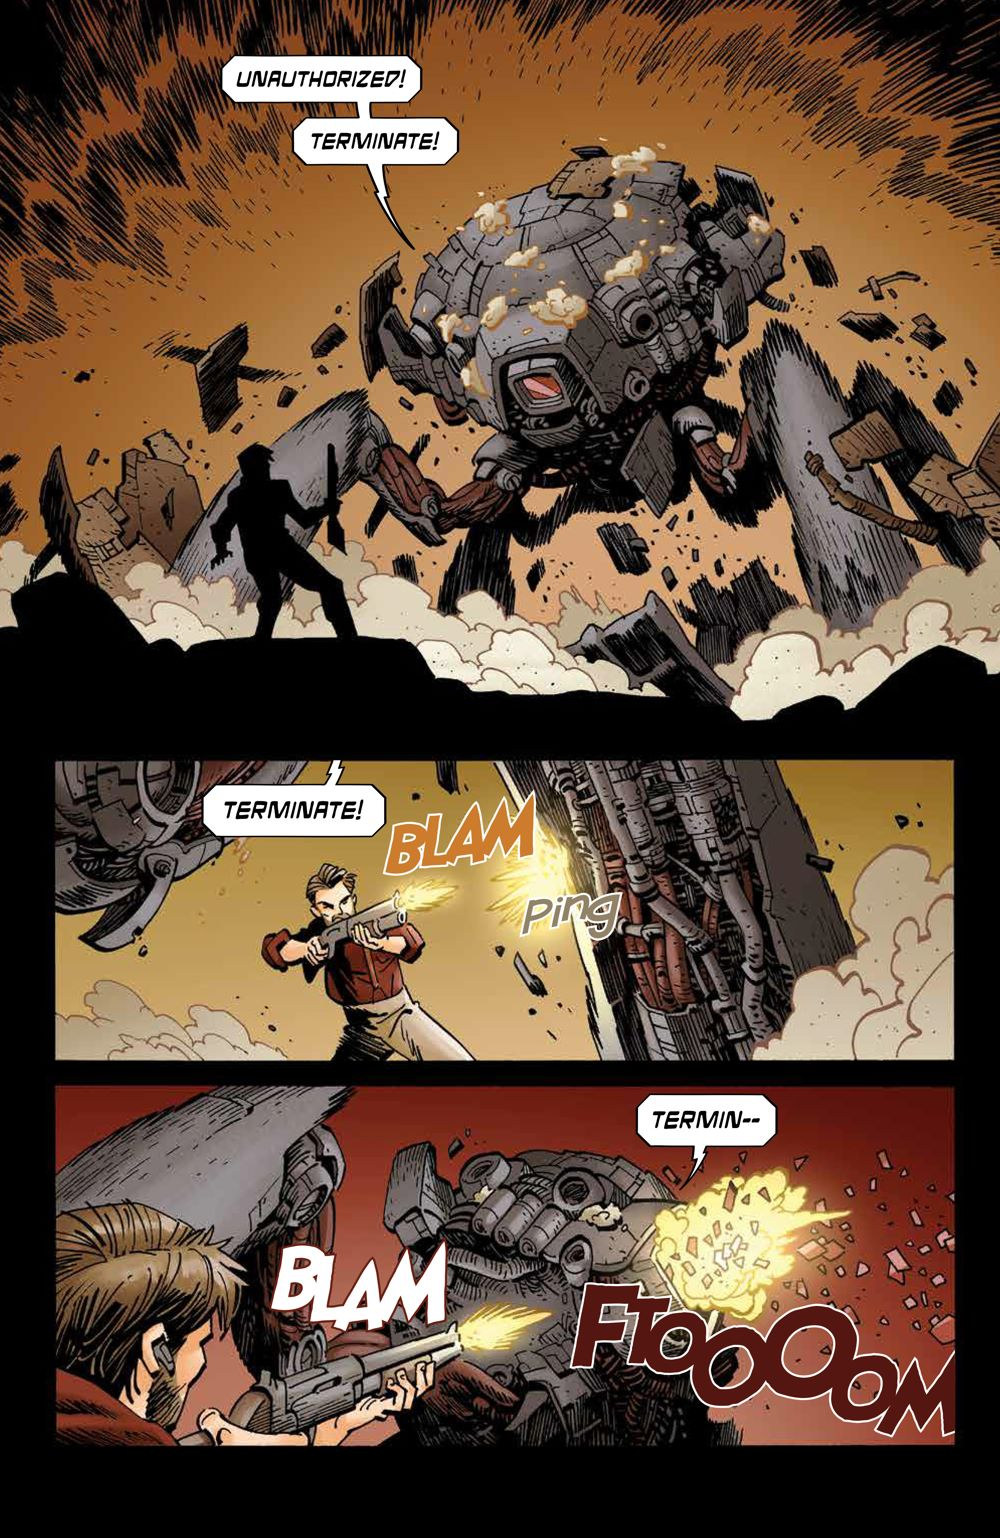 Firefly_027_PRESS_6 ComicList Previews: FIREFLY #27